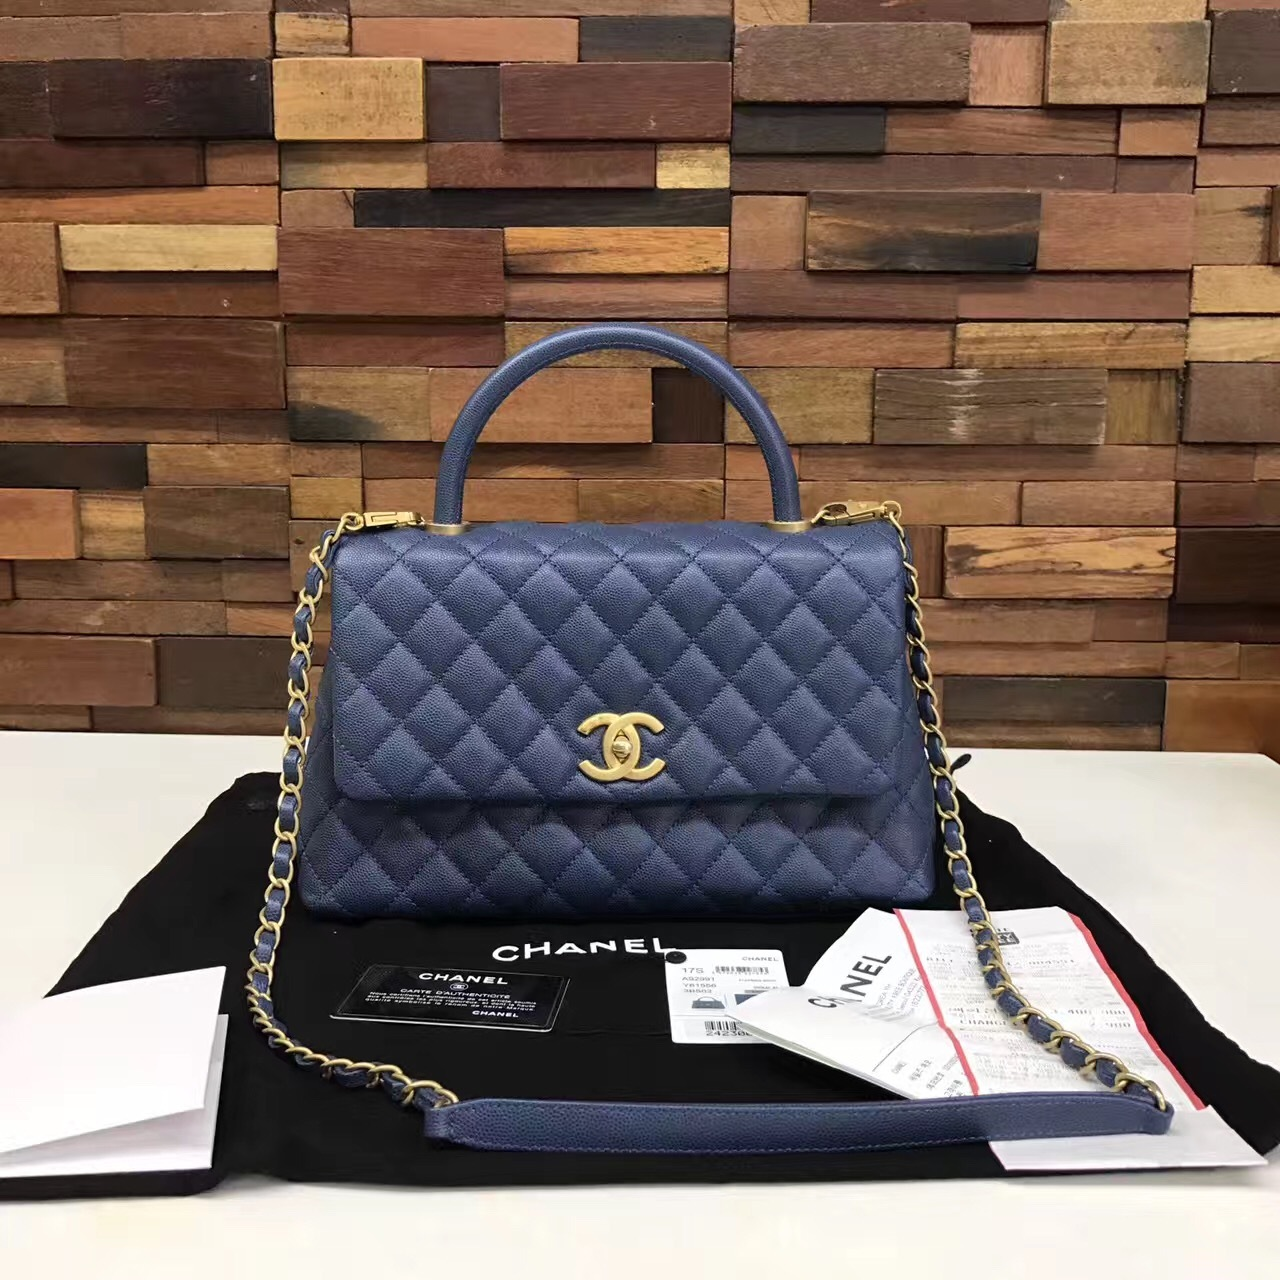 5912818791229a Img 2370. Img 2370. Previous. AUTHENTIC CHANEL 2017 BLUE QUILTED CAVIAR  MEDIUM COCO HANDLE BAG ...